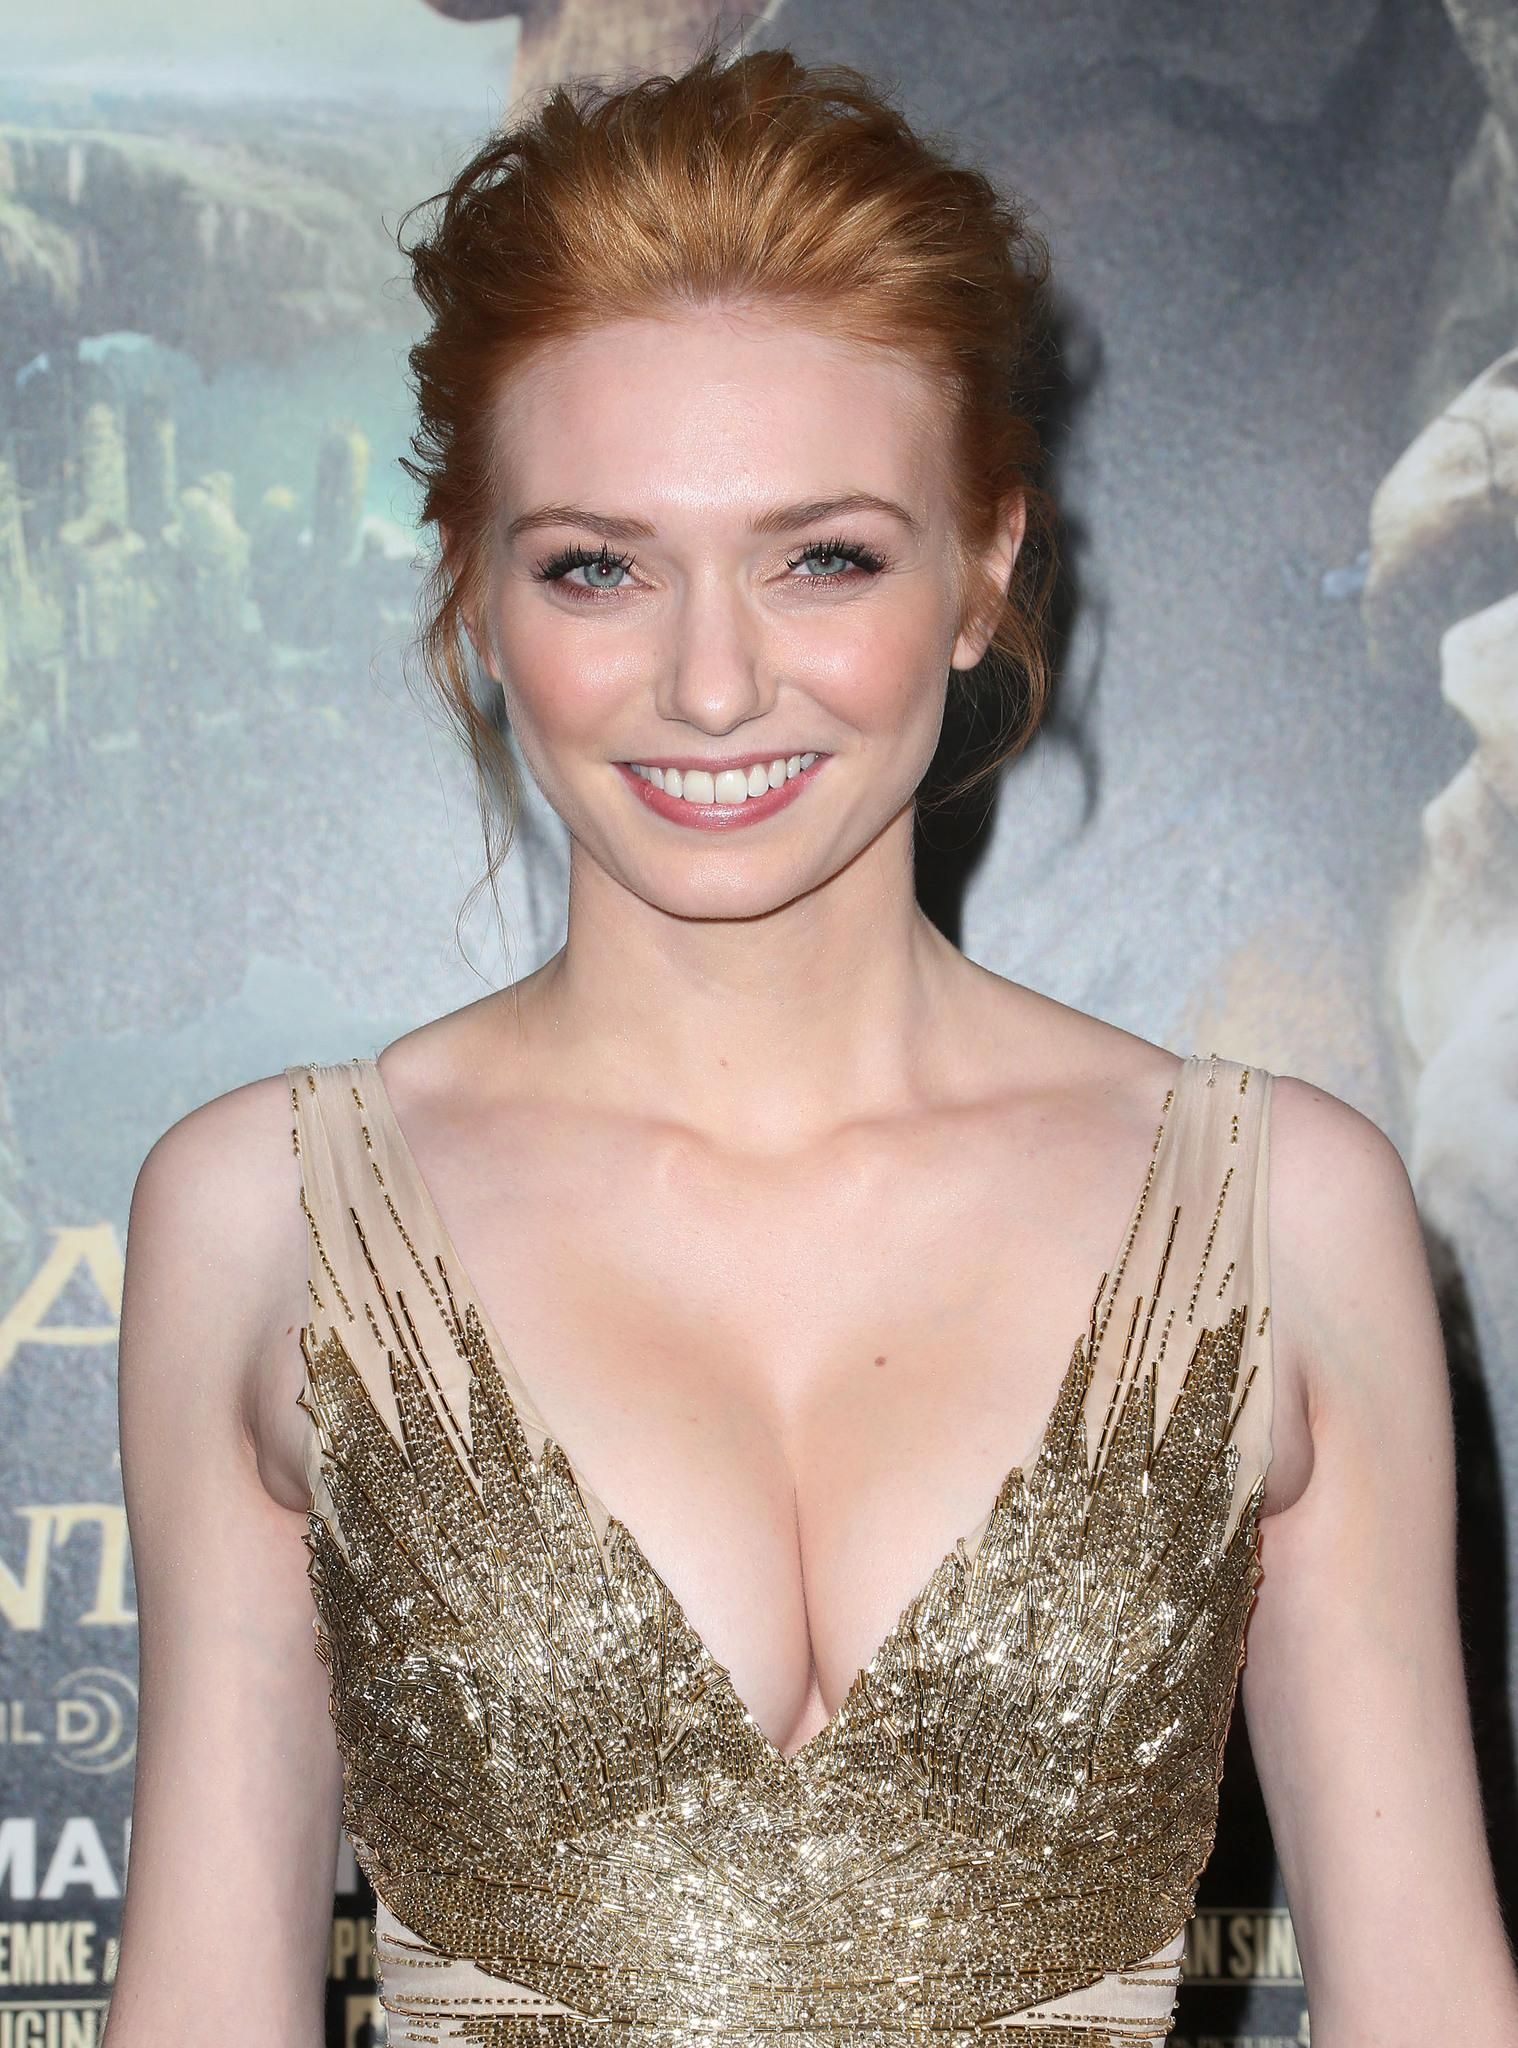 Pin by Toni Jay on Hair colour | Pinterest | Eleanor tomlinson ...